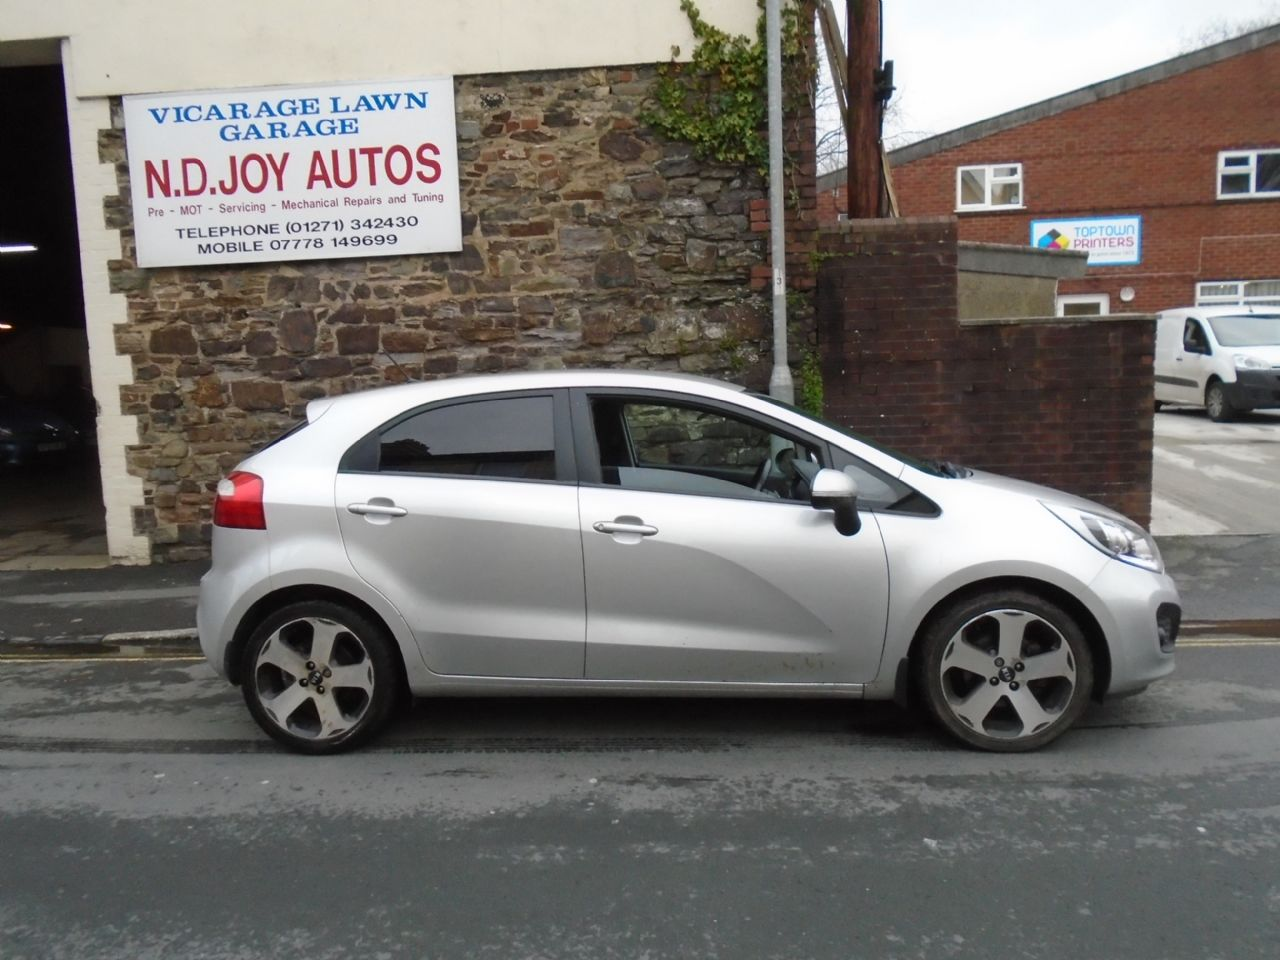 KIARIO1.4 CRDI 3 EcoDynamics for sale